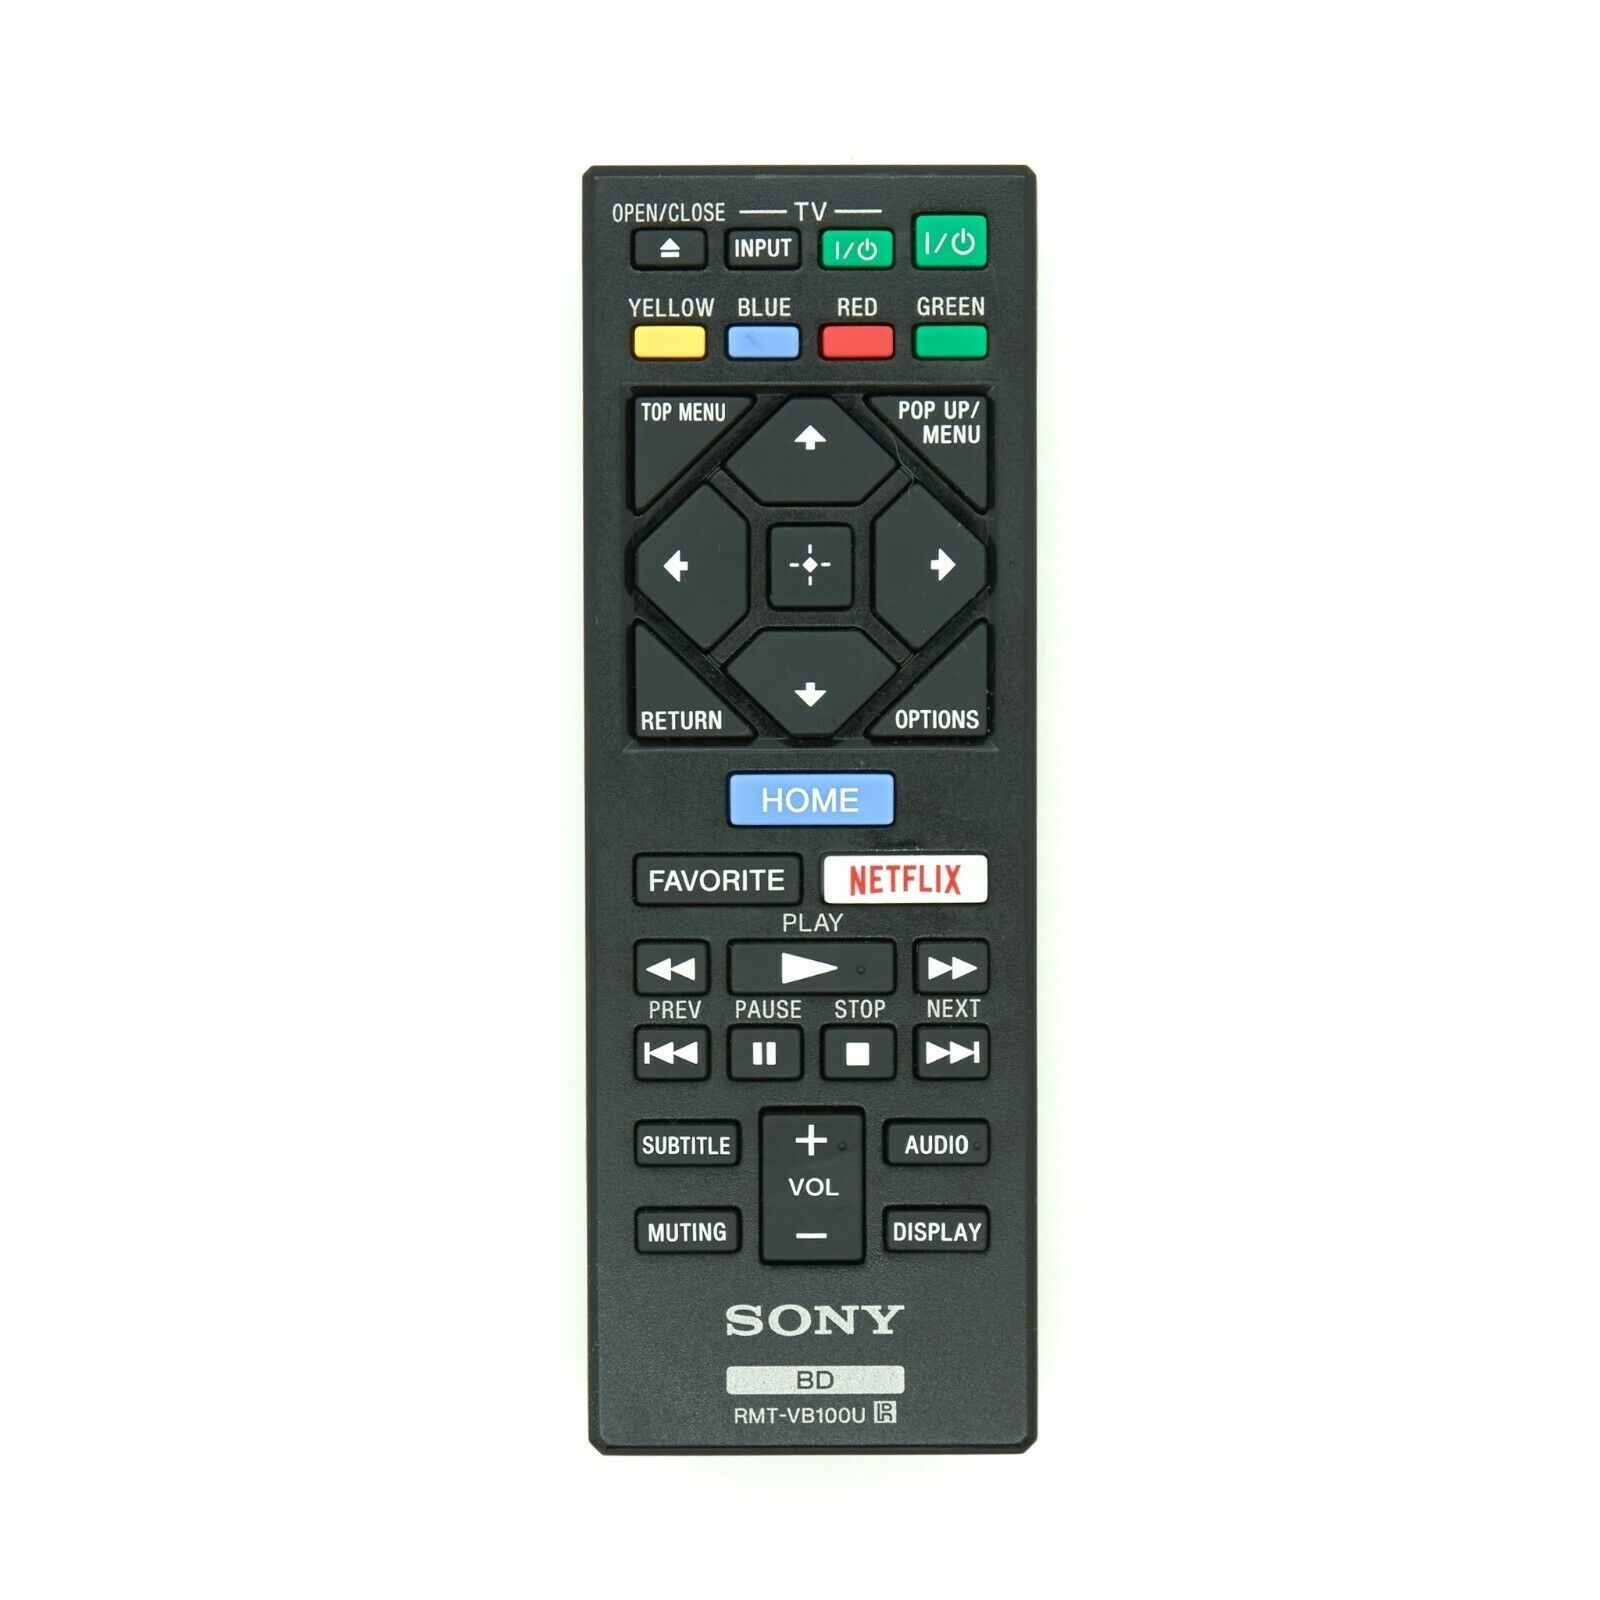 RMT-VB100U Remote for Sony Blu-ray DVD Player BDP-S1500 S3500 BDP-BX150 - $7.25